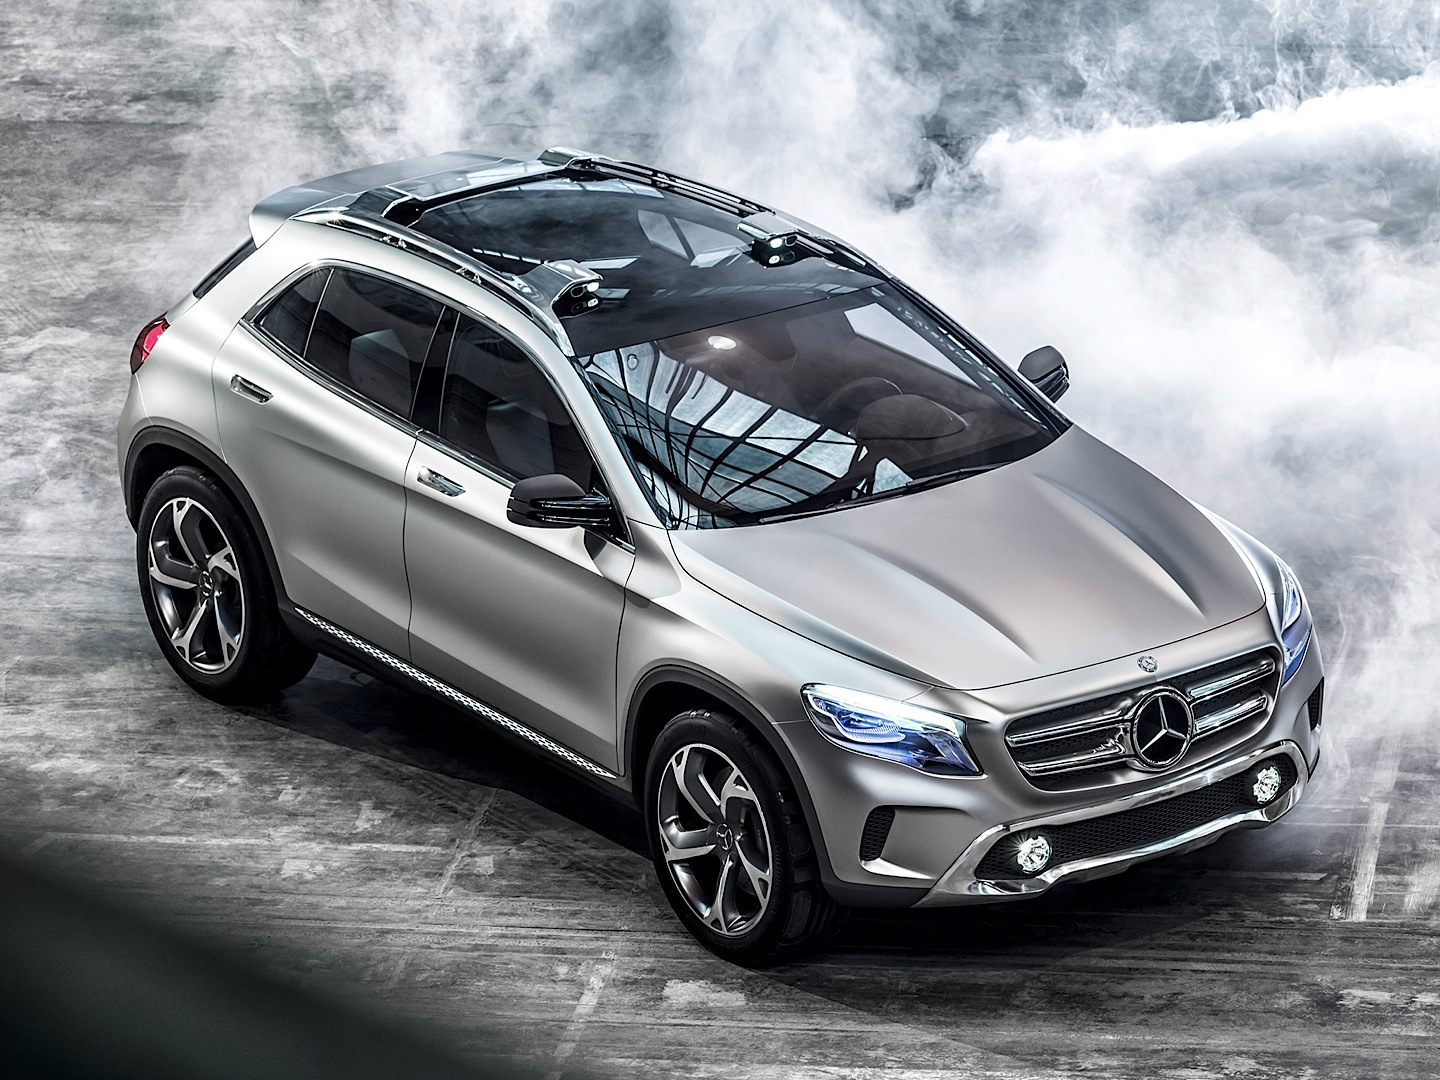 Mercedes benz gla prices and release date speculations in for Mercedes benz gla 2015 price